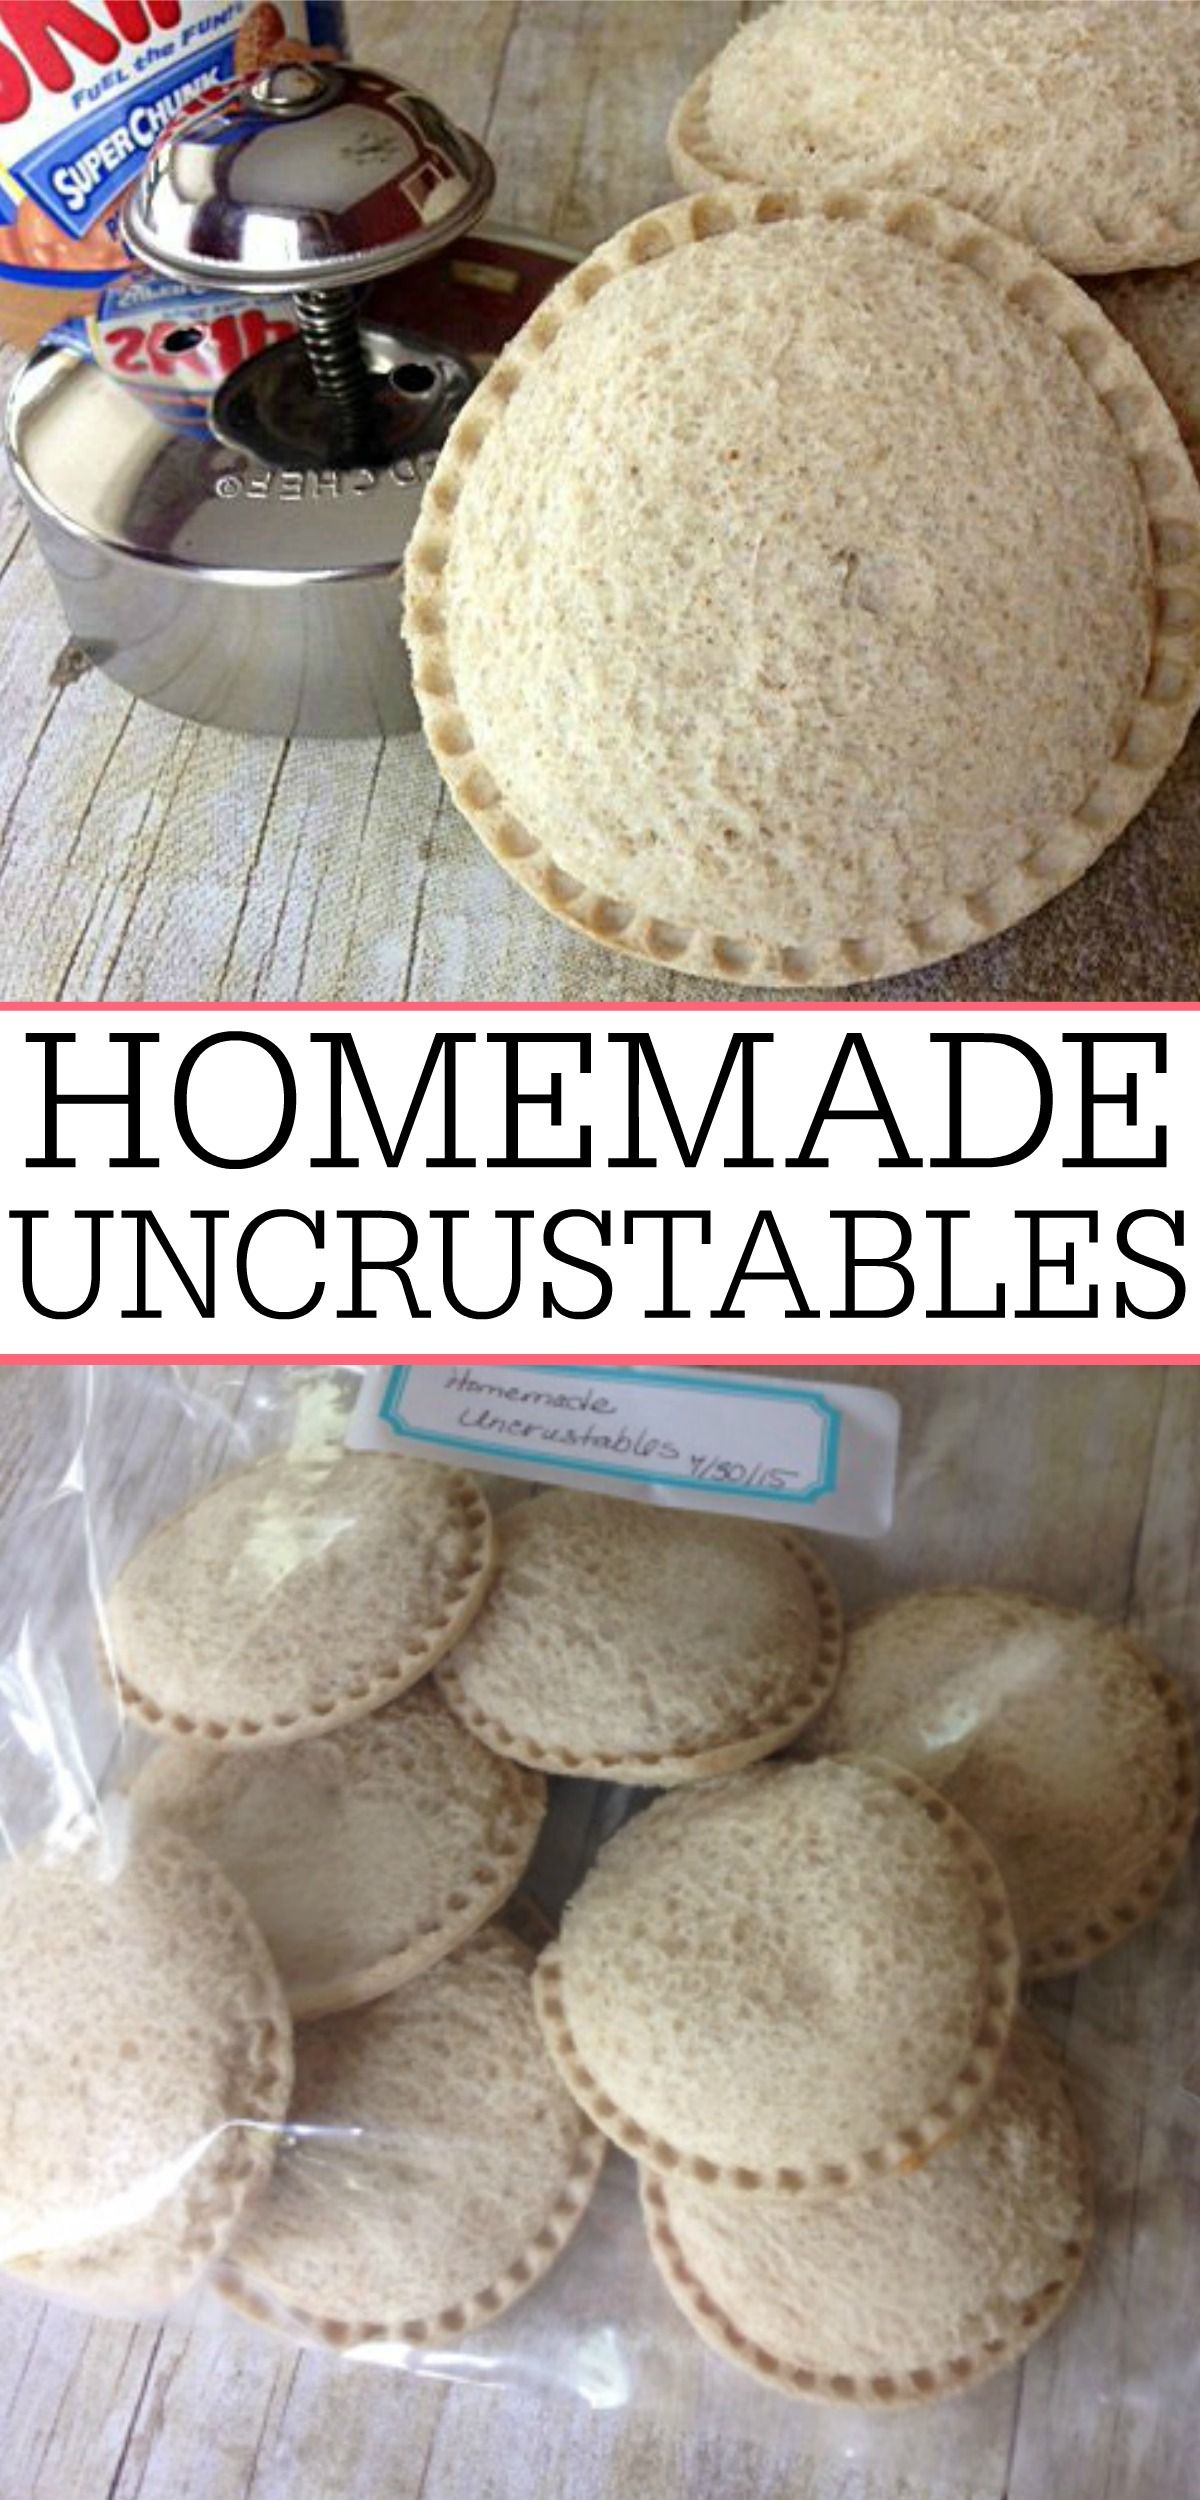 Homemade Uncrustables   Homemade, Lunches and Freezer